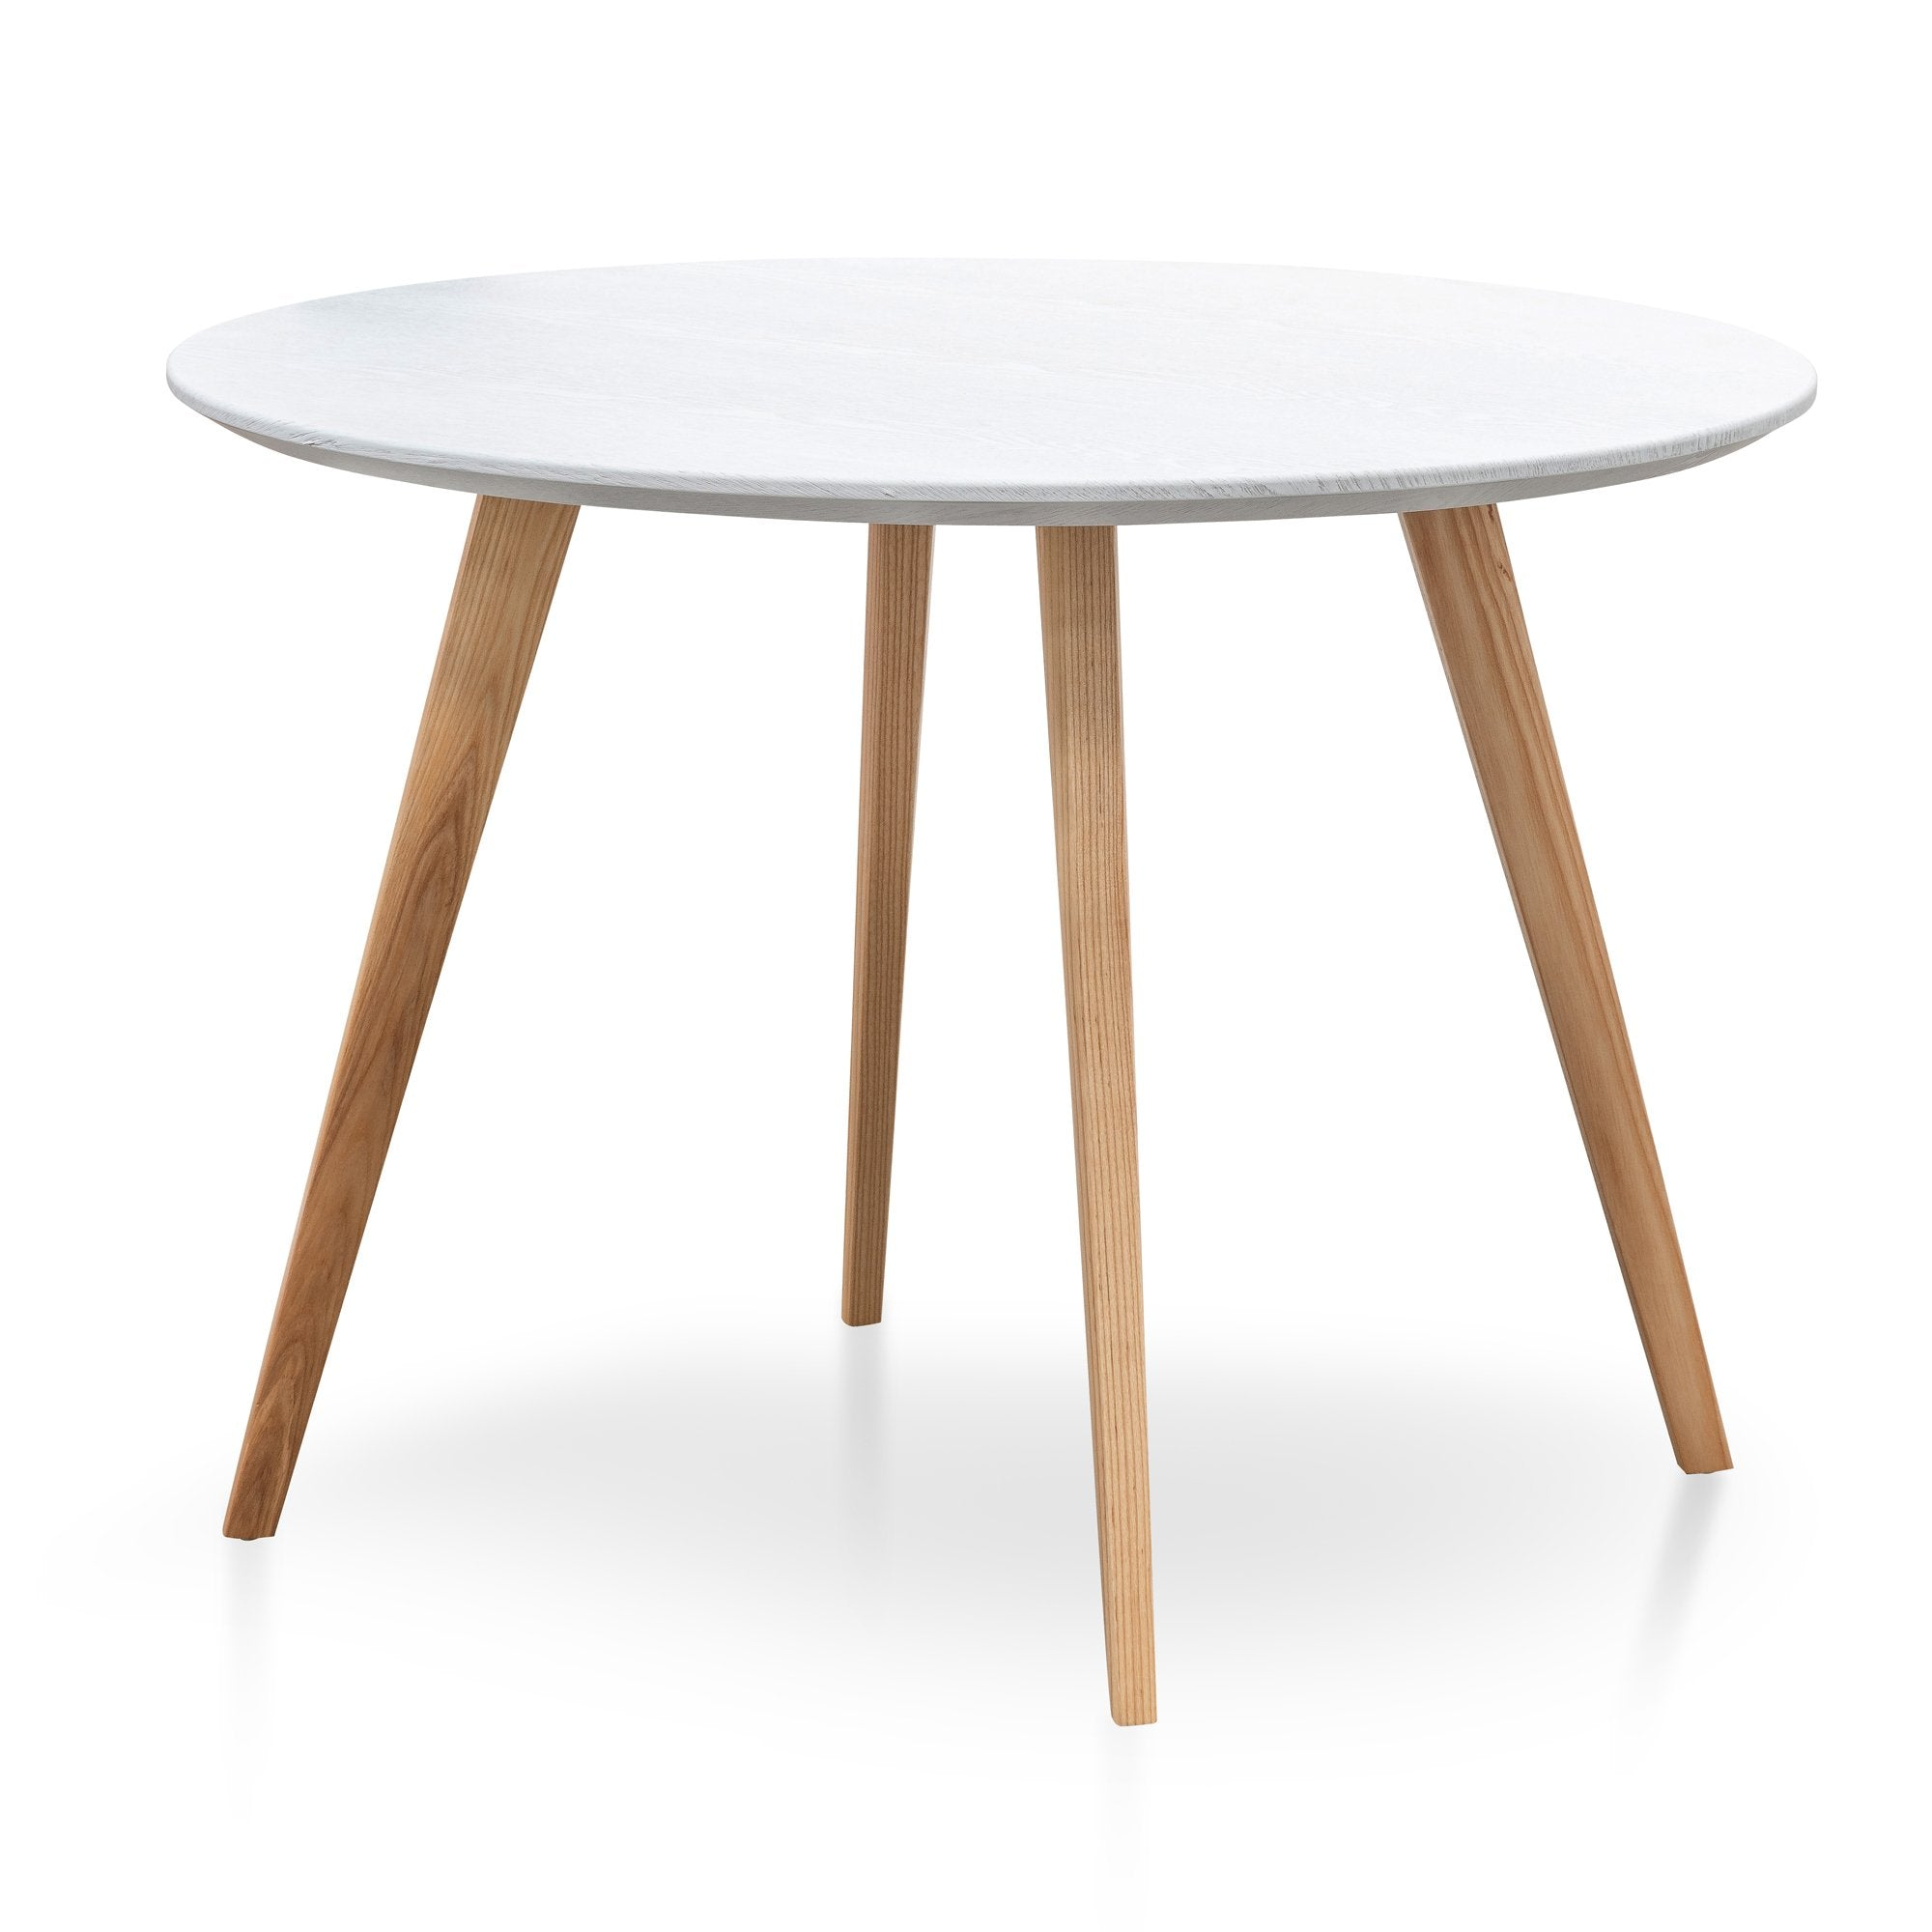 Halo 9m Round Dining Table   Washed White Top   Natur..   Interior Secrets